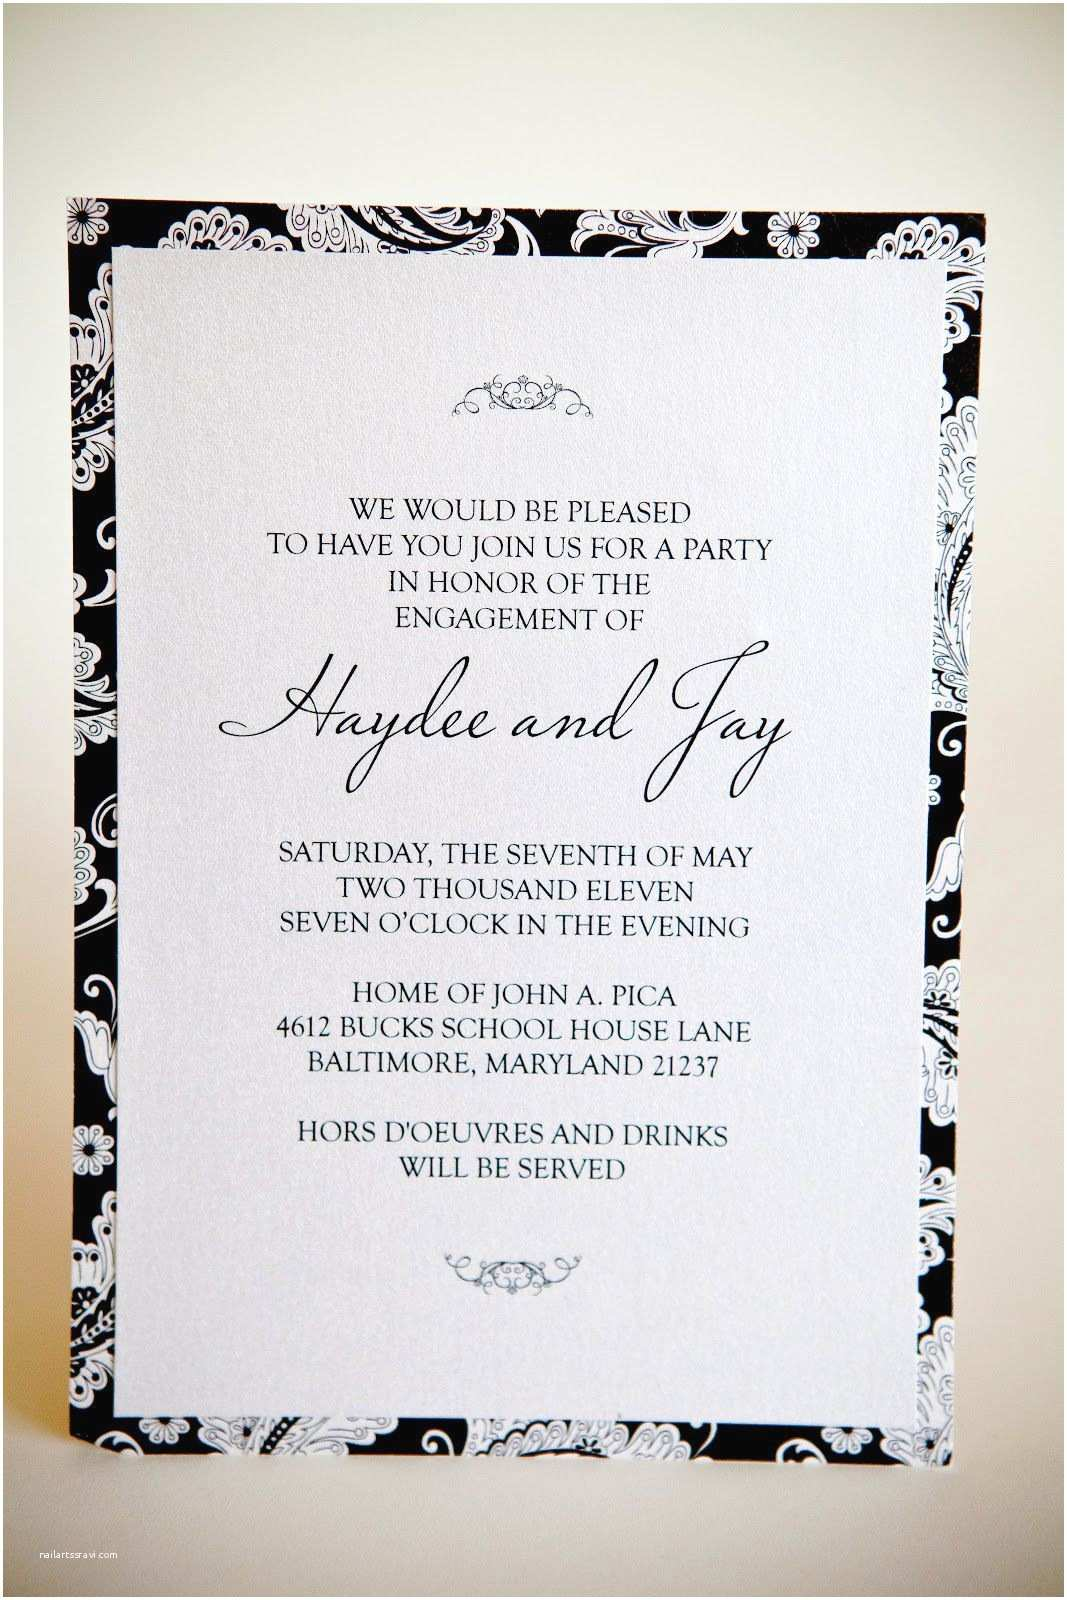 Engagement Party Invitation Wording How to Word Engagement Party Invitations How to Word